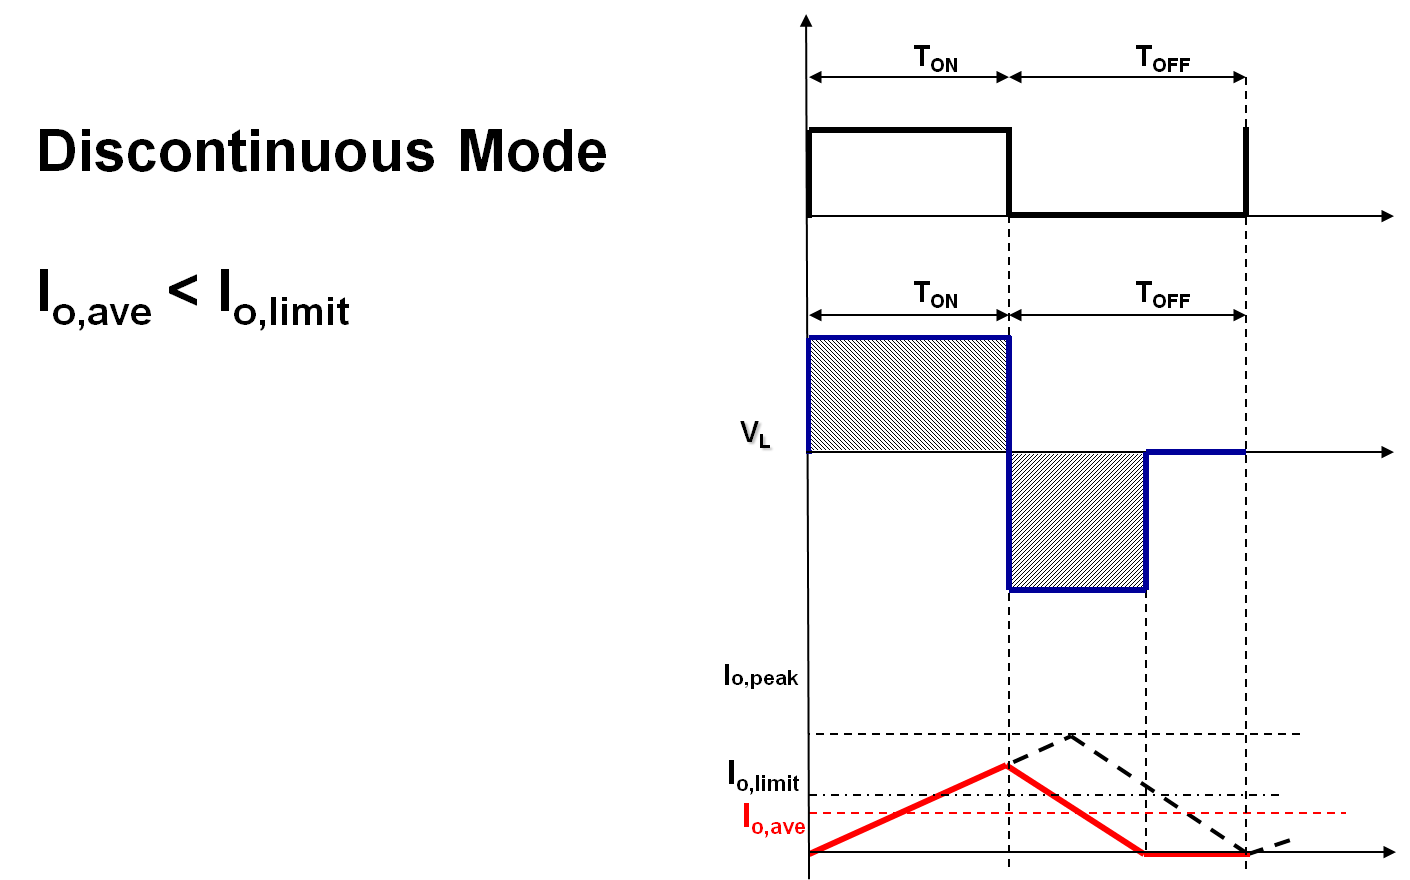 buck-converter-discontinuous-mode.png